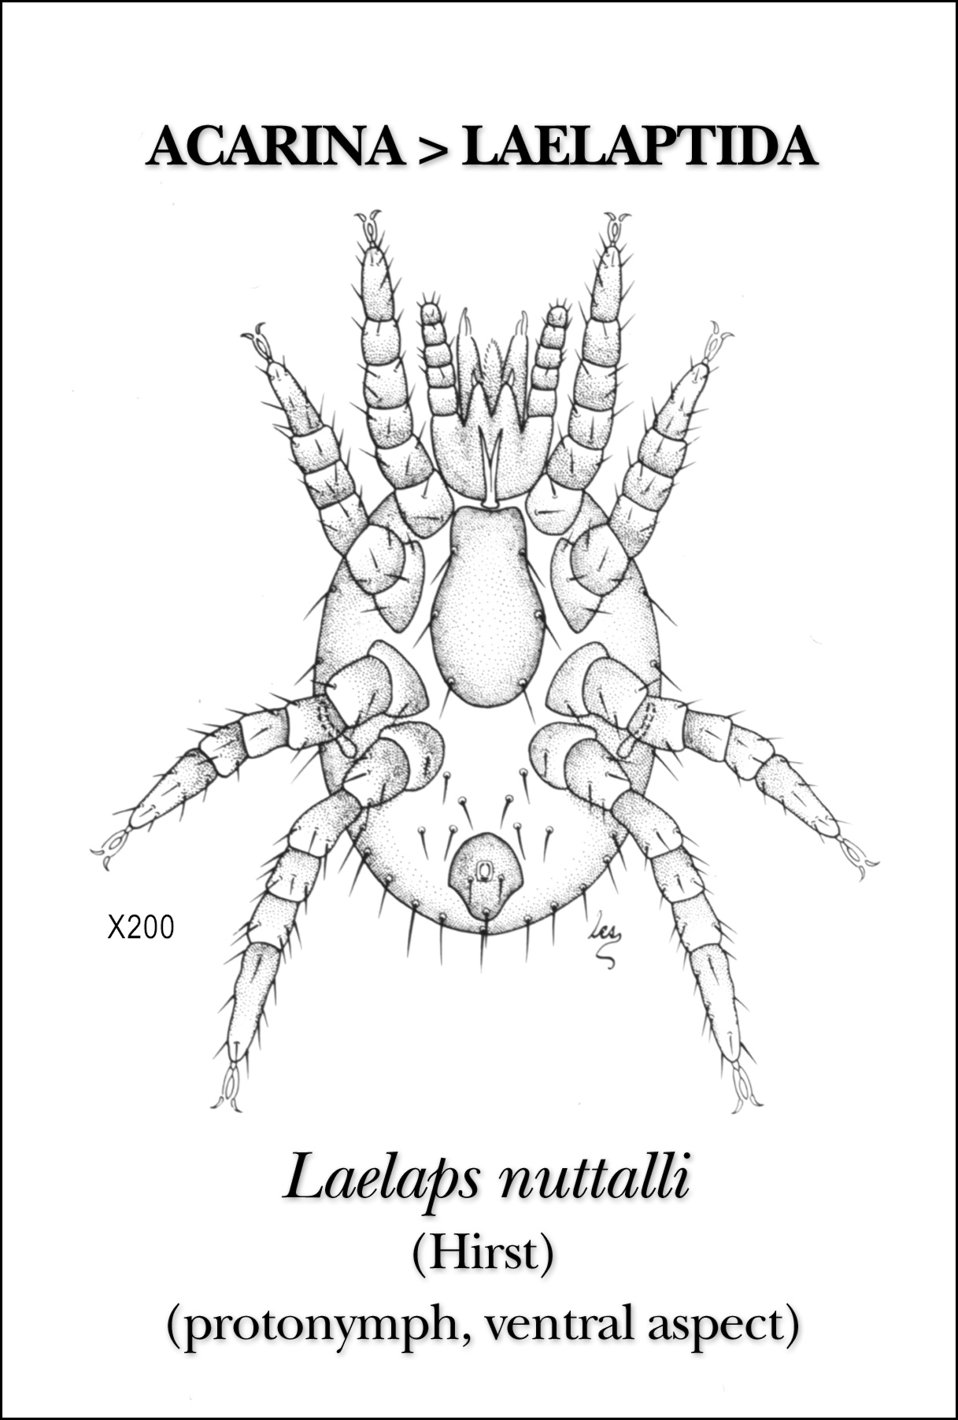 This illustration reveals the morphologic features on the ventral surface of the protonymph staged mite, Laelaps nuttalli.